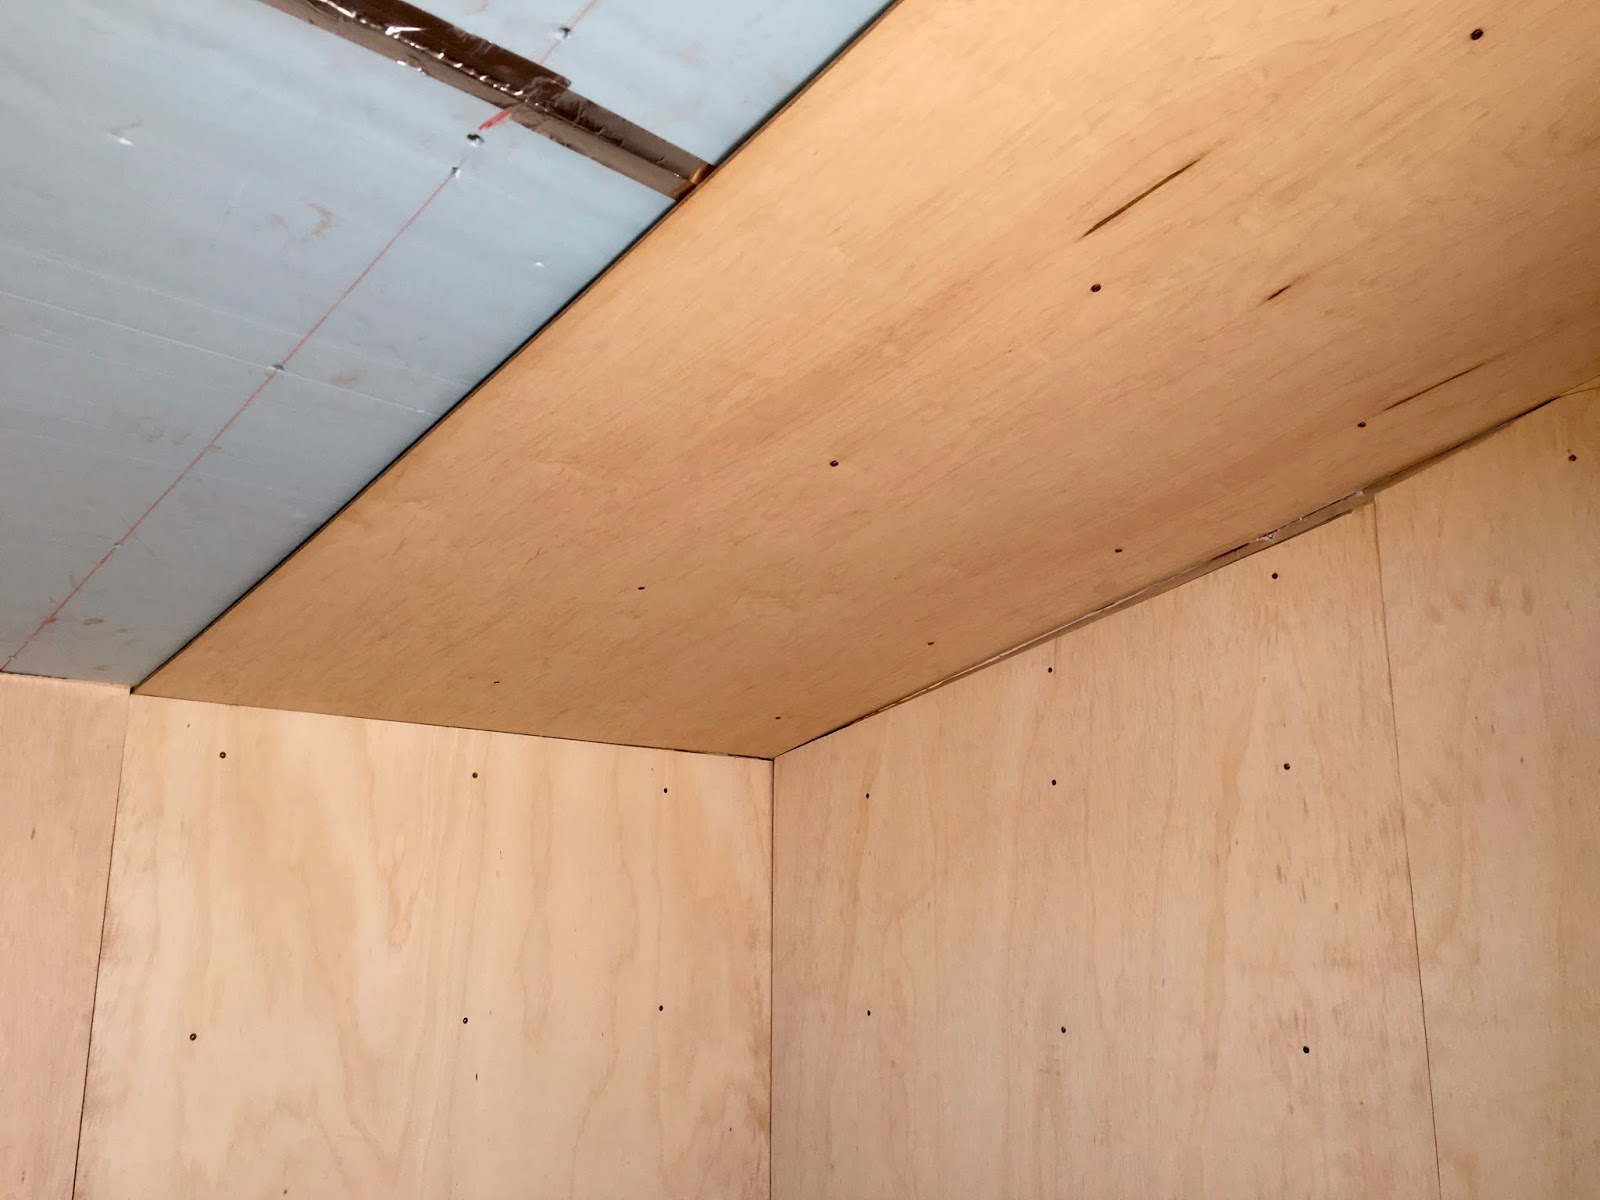 Syonyk S Project Blog Solar Shed Part 7 Plywooding The